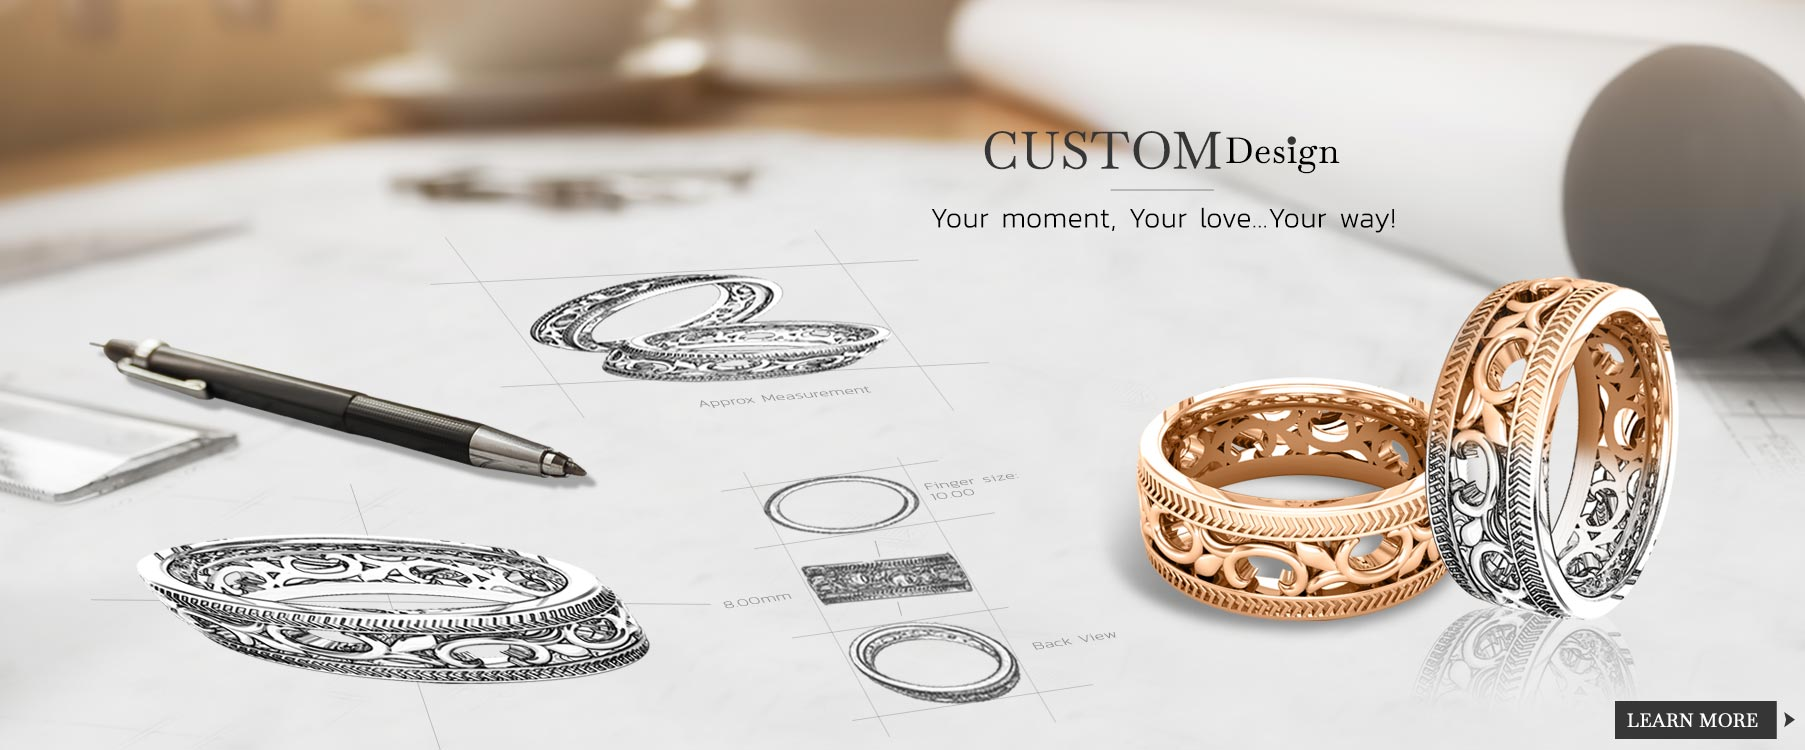 Custom Design Jewellery At Stearns Showcase Jewellers